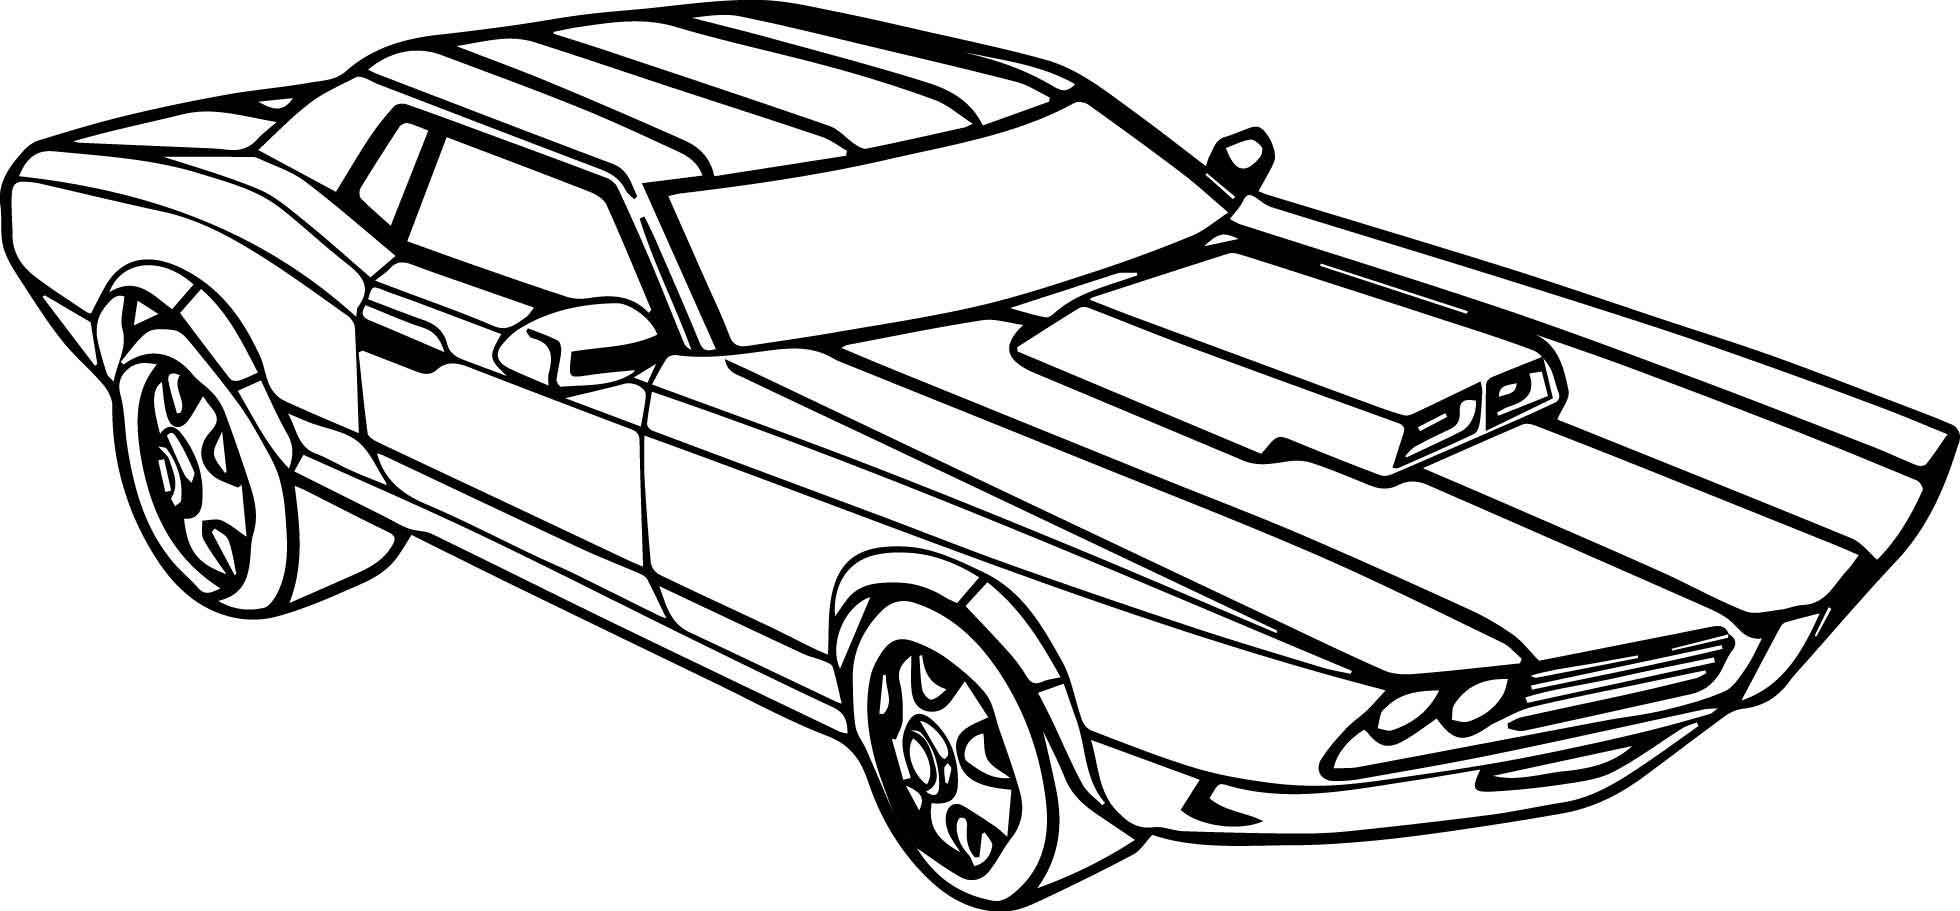 2b8e3b9091d9a0b302ed8a8b49a8ce04 » Realistic Race Car Car Coloring Pages